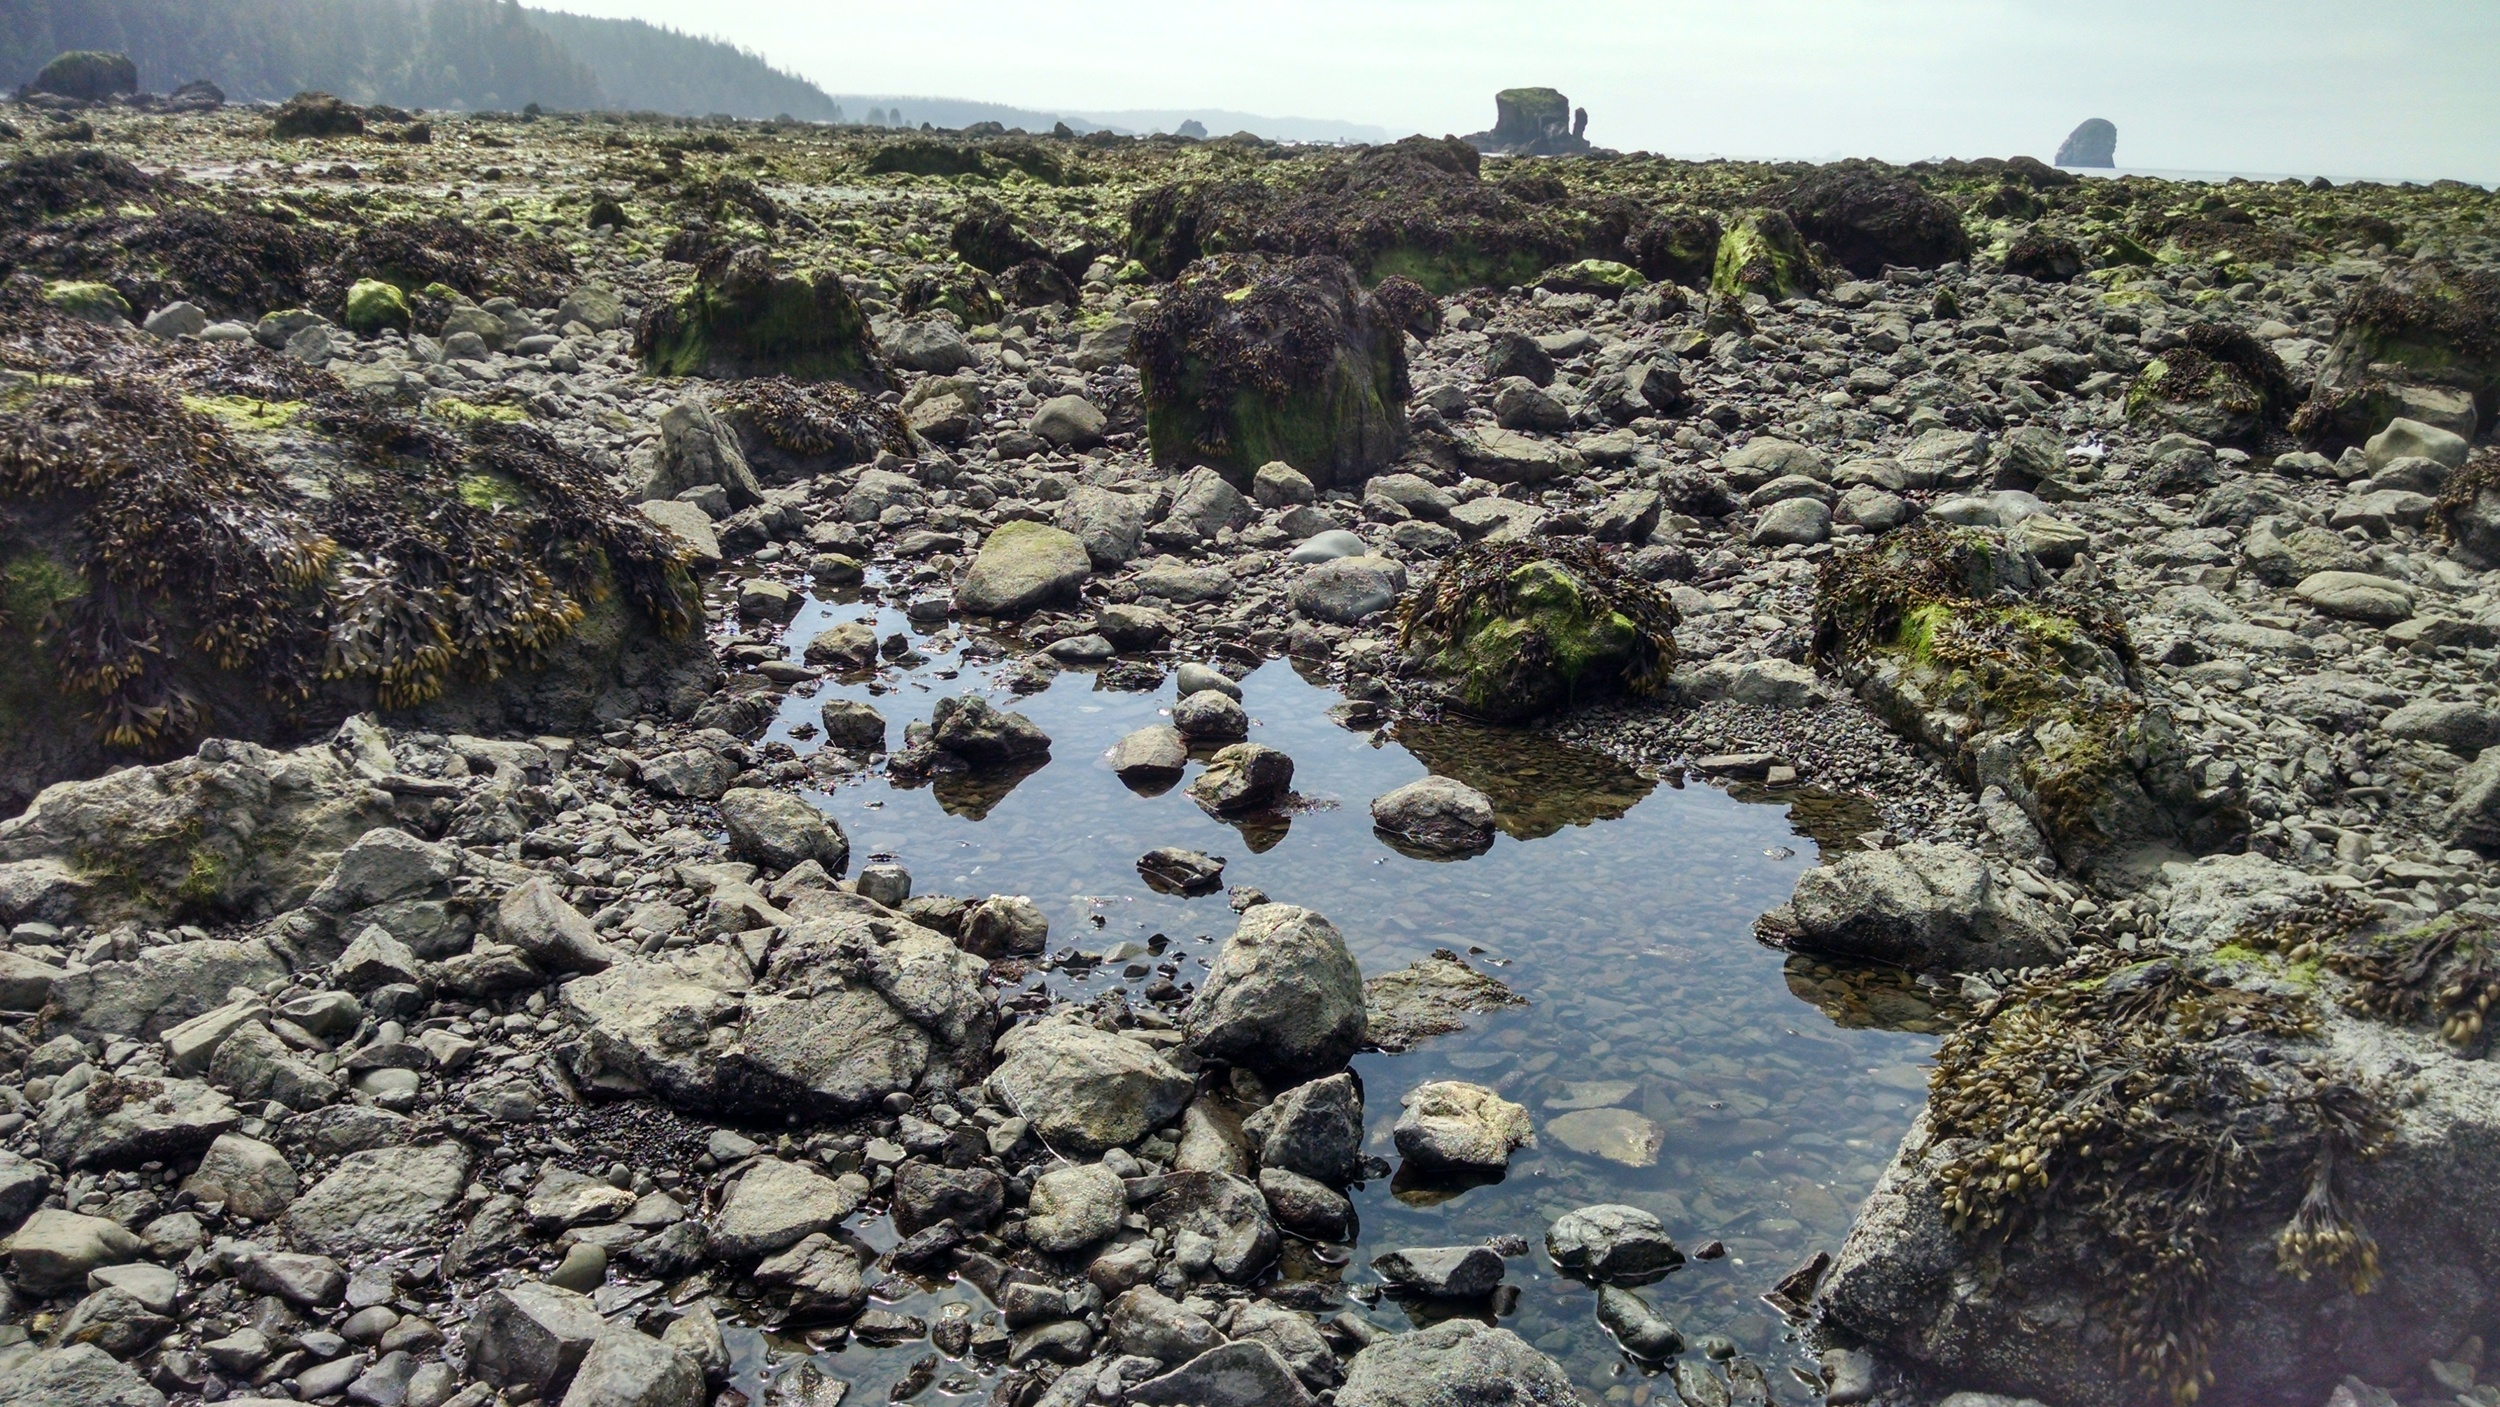 Amazing biodiversity and wildlife within tide pools